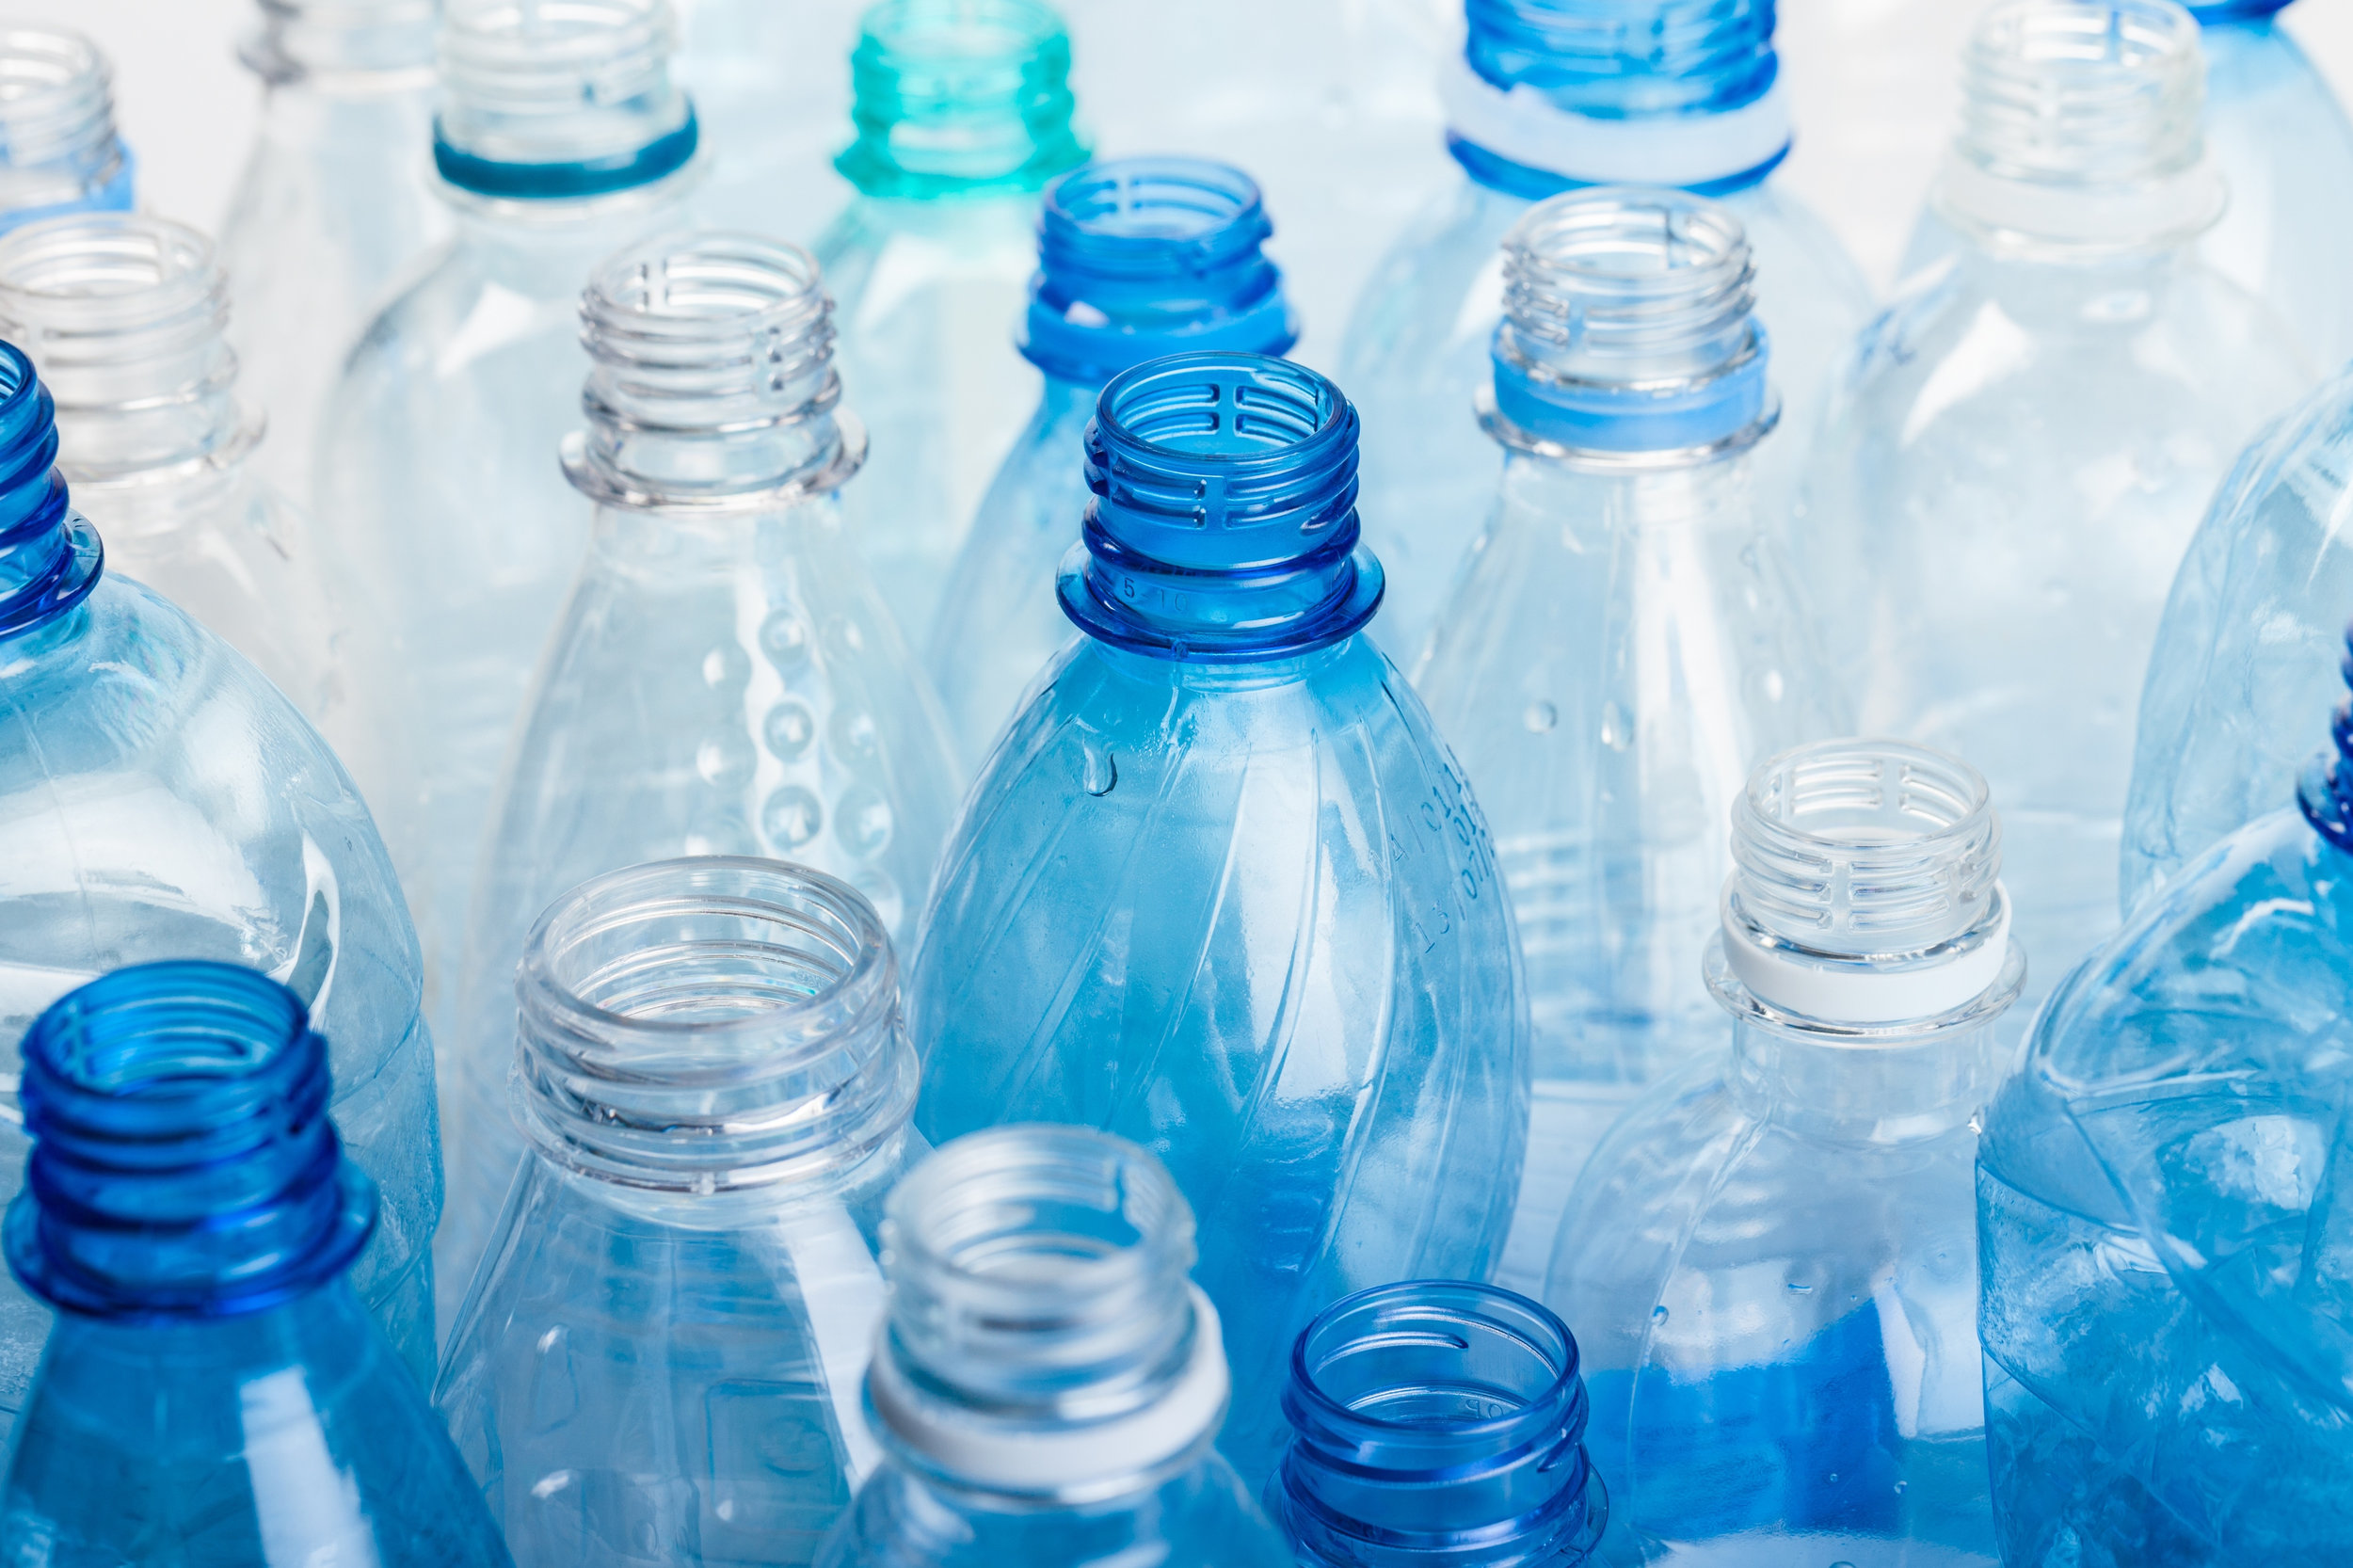 plastic bottles clear and blue-ts-585288480.jpg